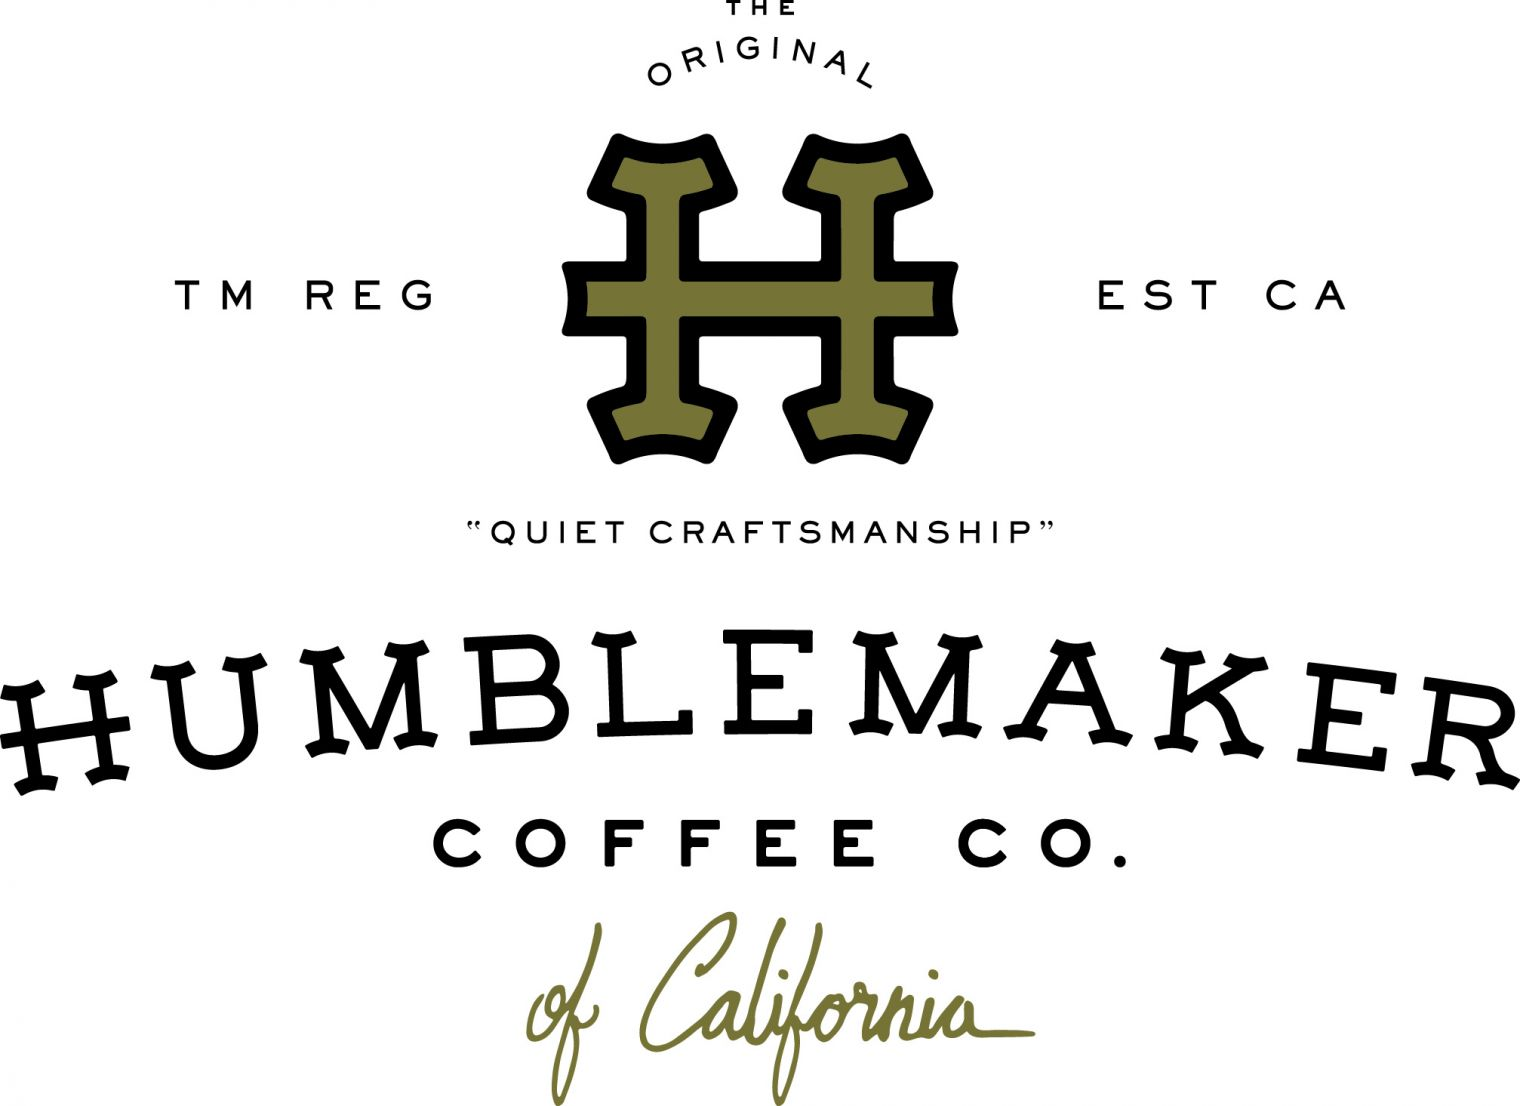 Humblemaker Coffee Co Logo